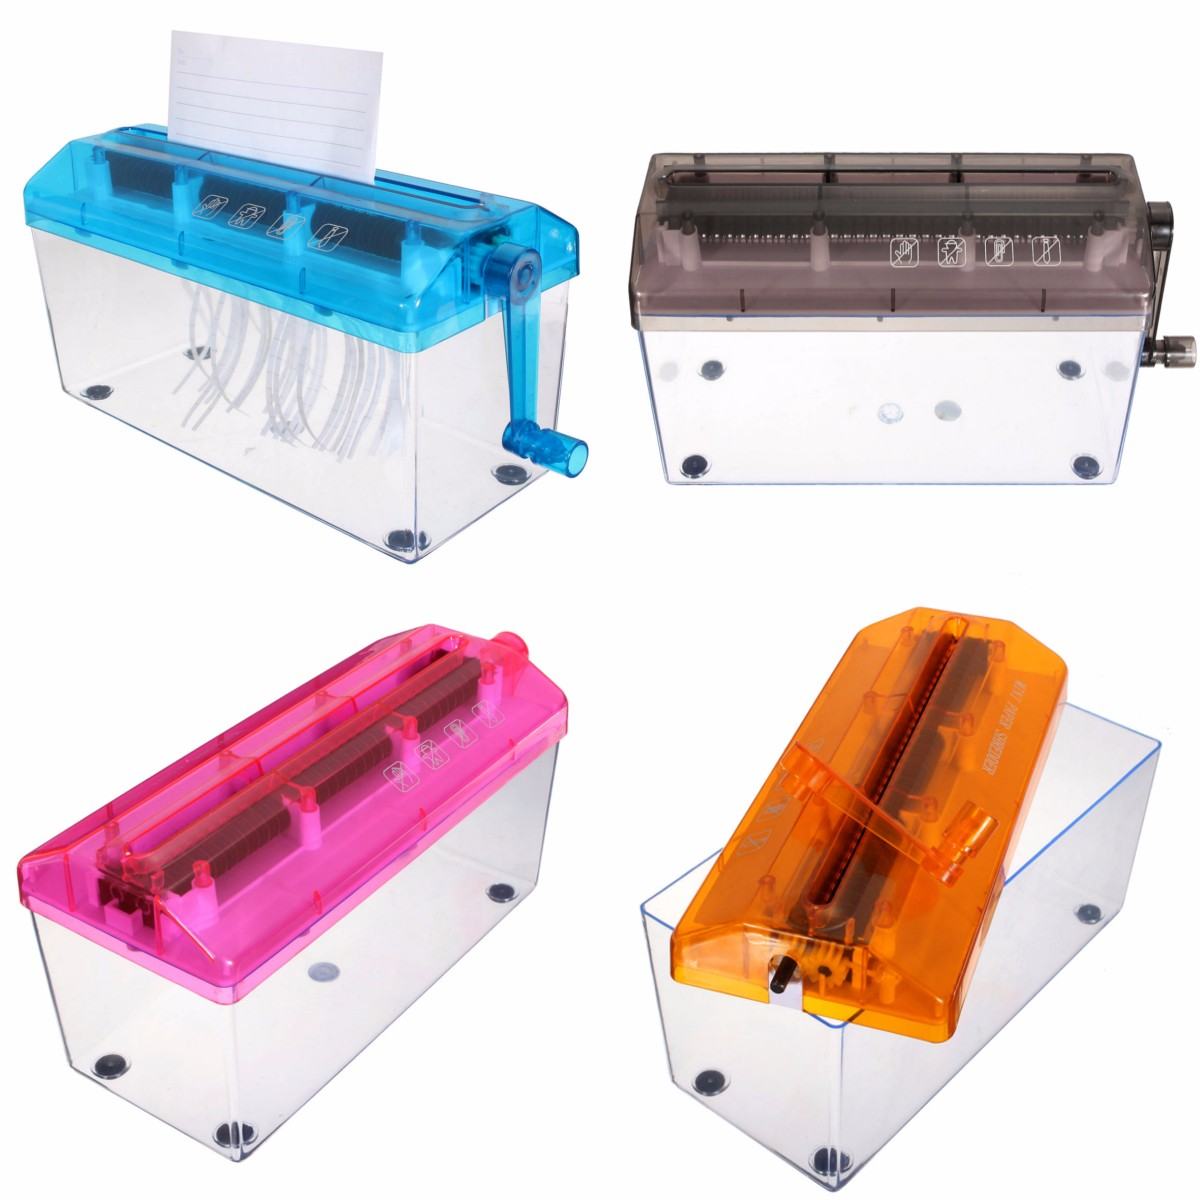 mini paper shredder for sale If you want to buy cheap mini shredder, choose mini shredder from banggoodcom it endeavors to provide the products that you want, offering the best bang for your buck.